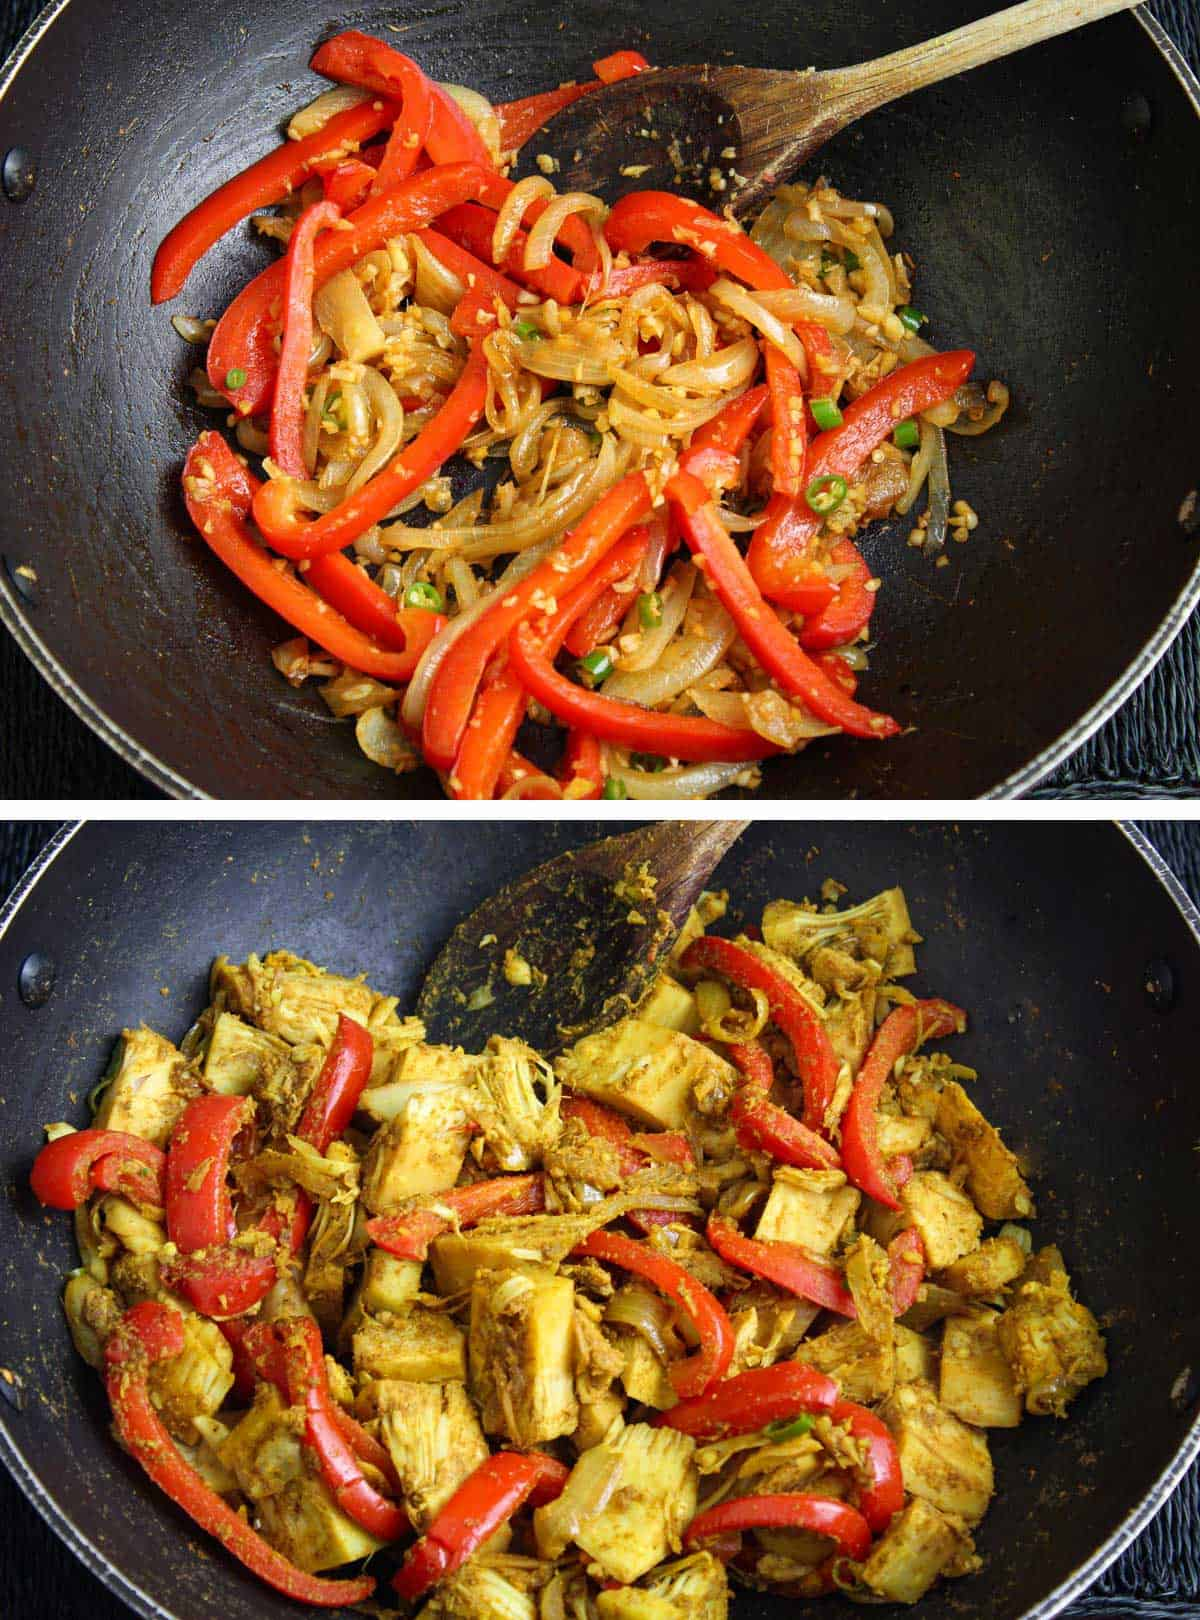 Onions, Peppers, Jackfruit and Spices Cooking